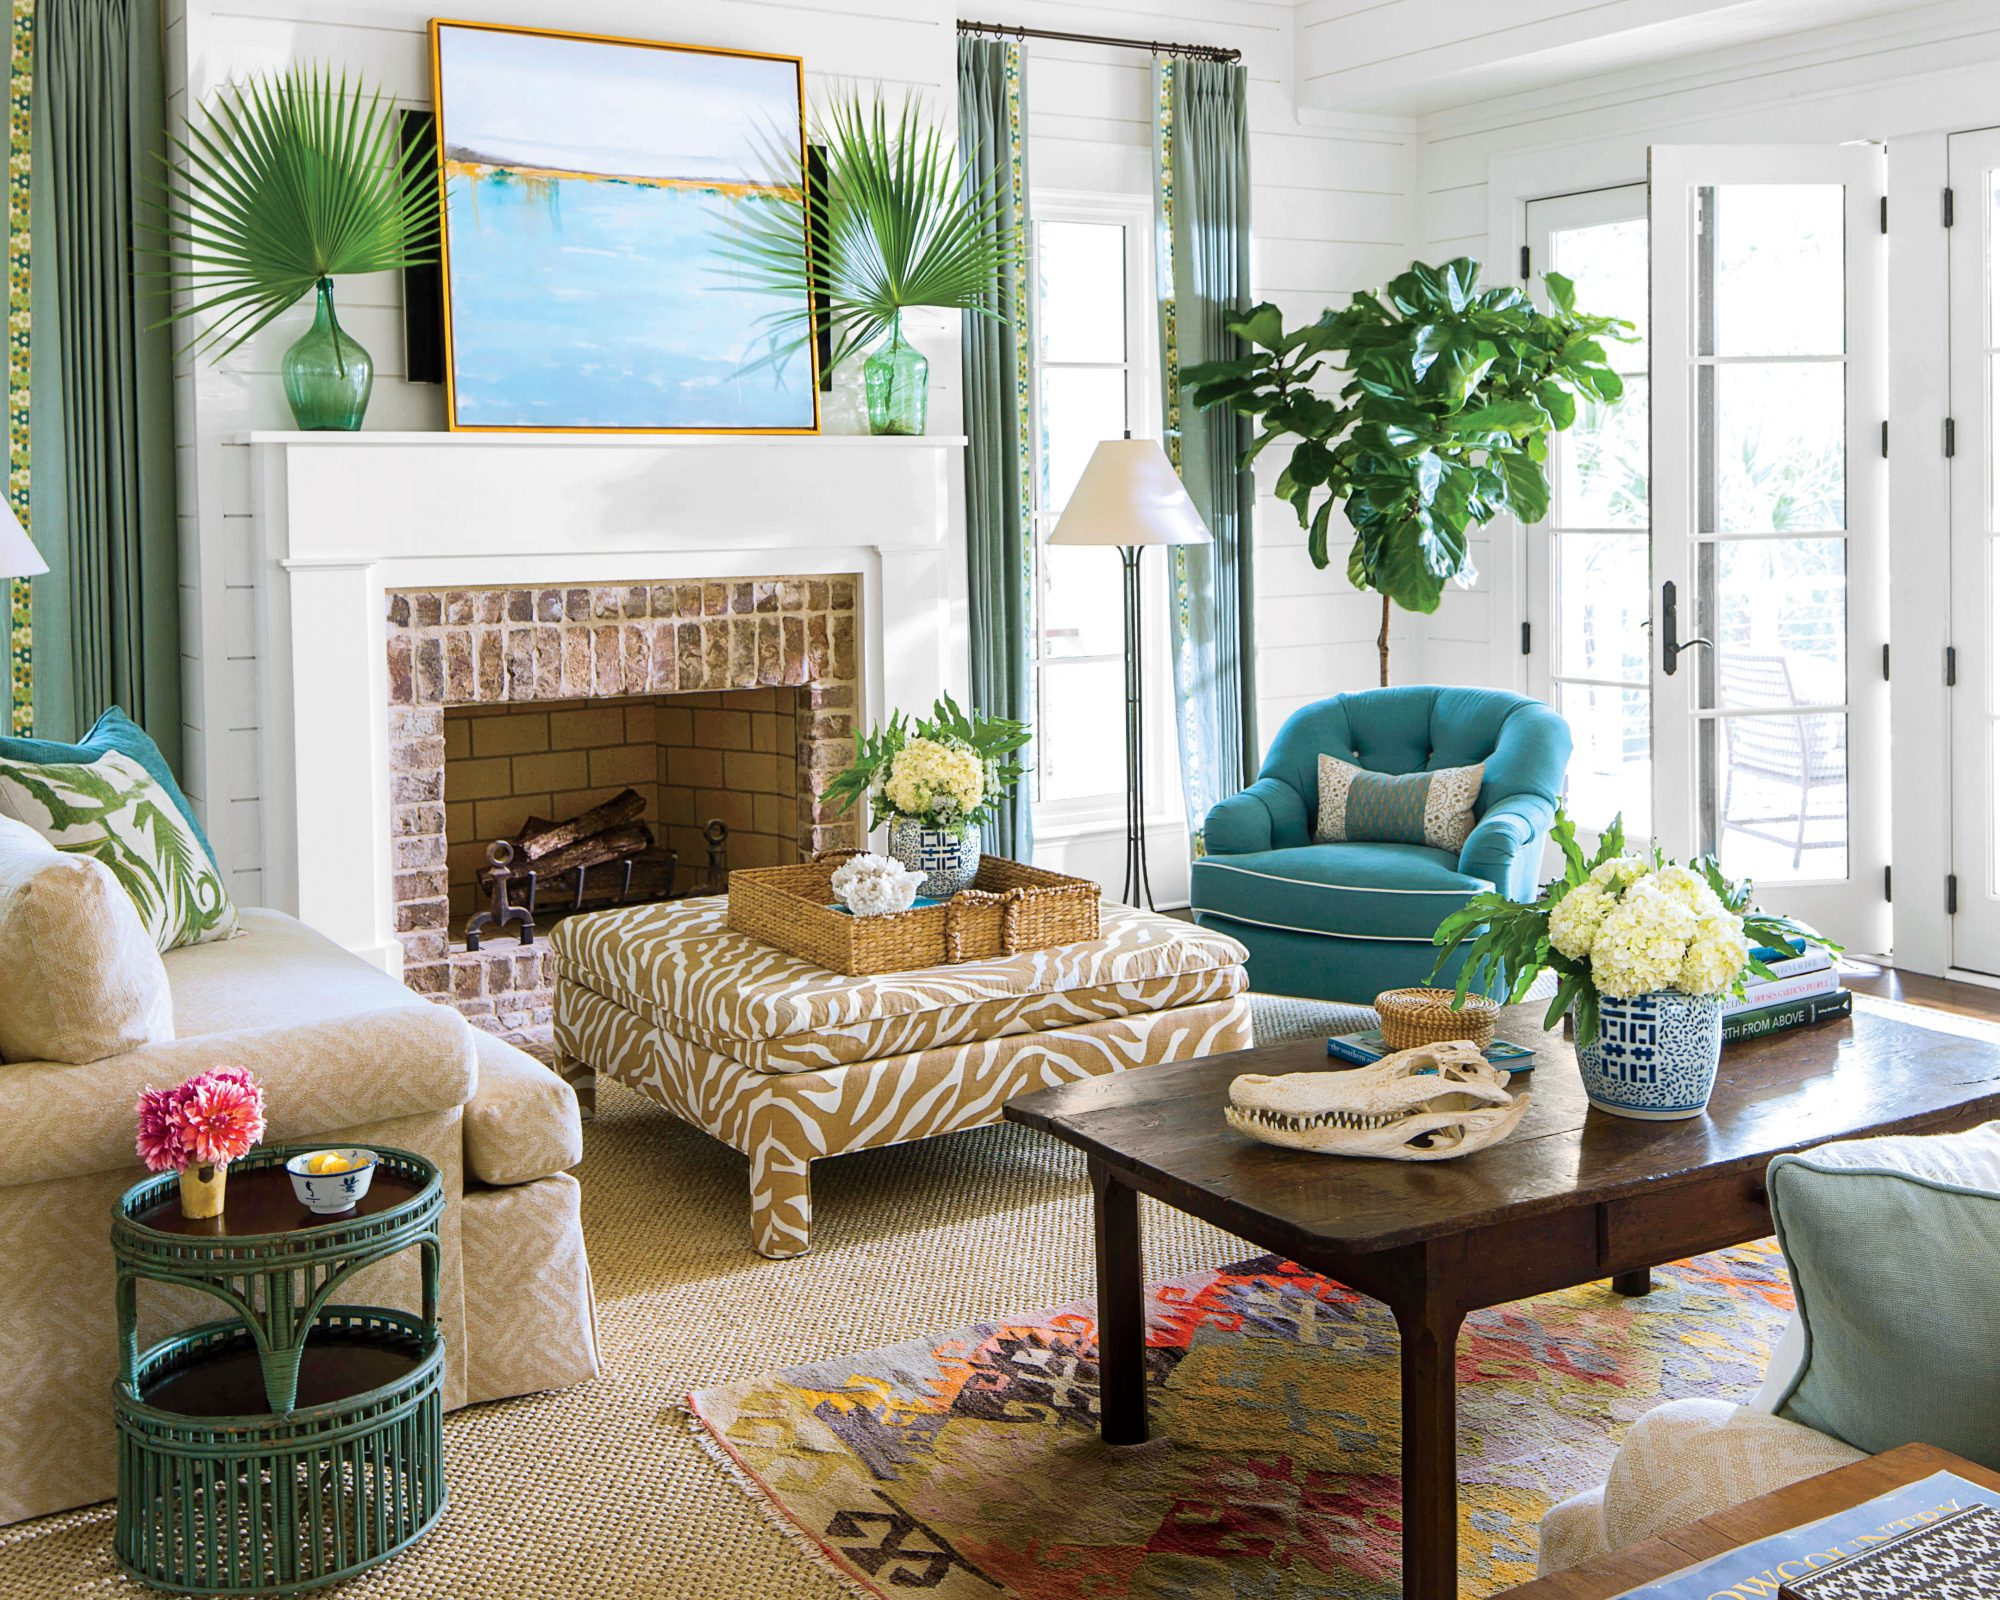 Living Room Decor Ideas Amusing 106 Living Room Decorating Ideas  Southern Living Design Decoration